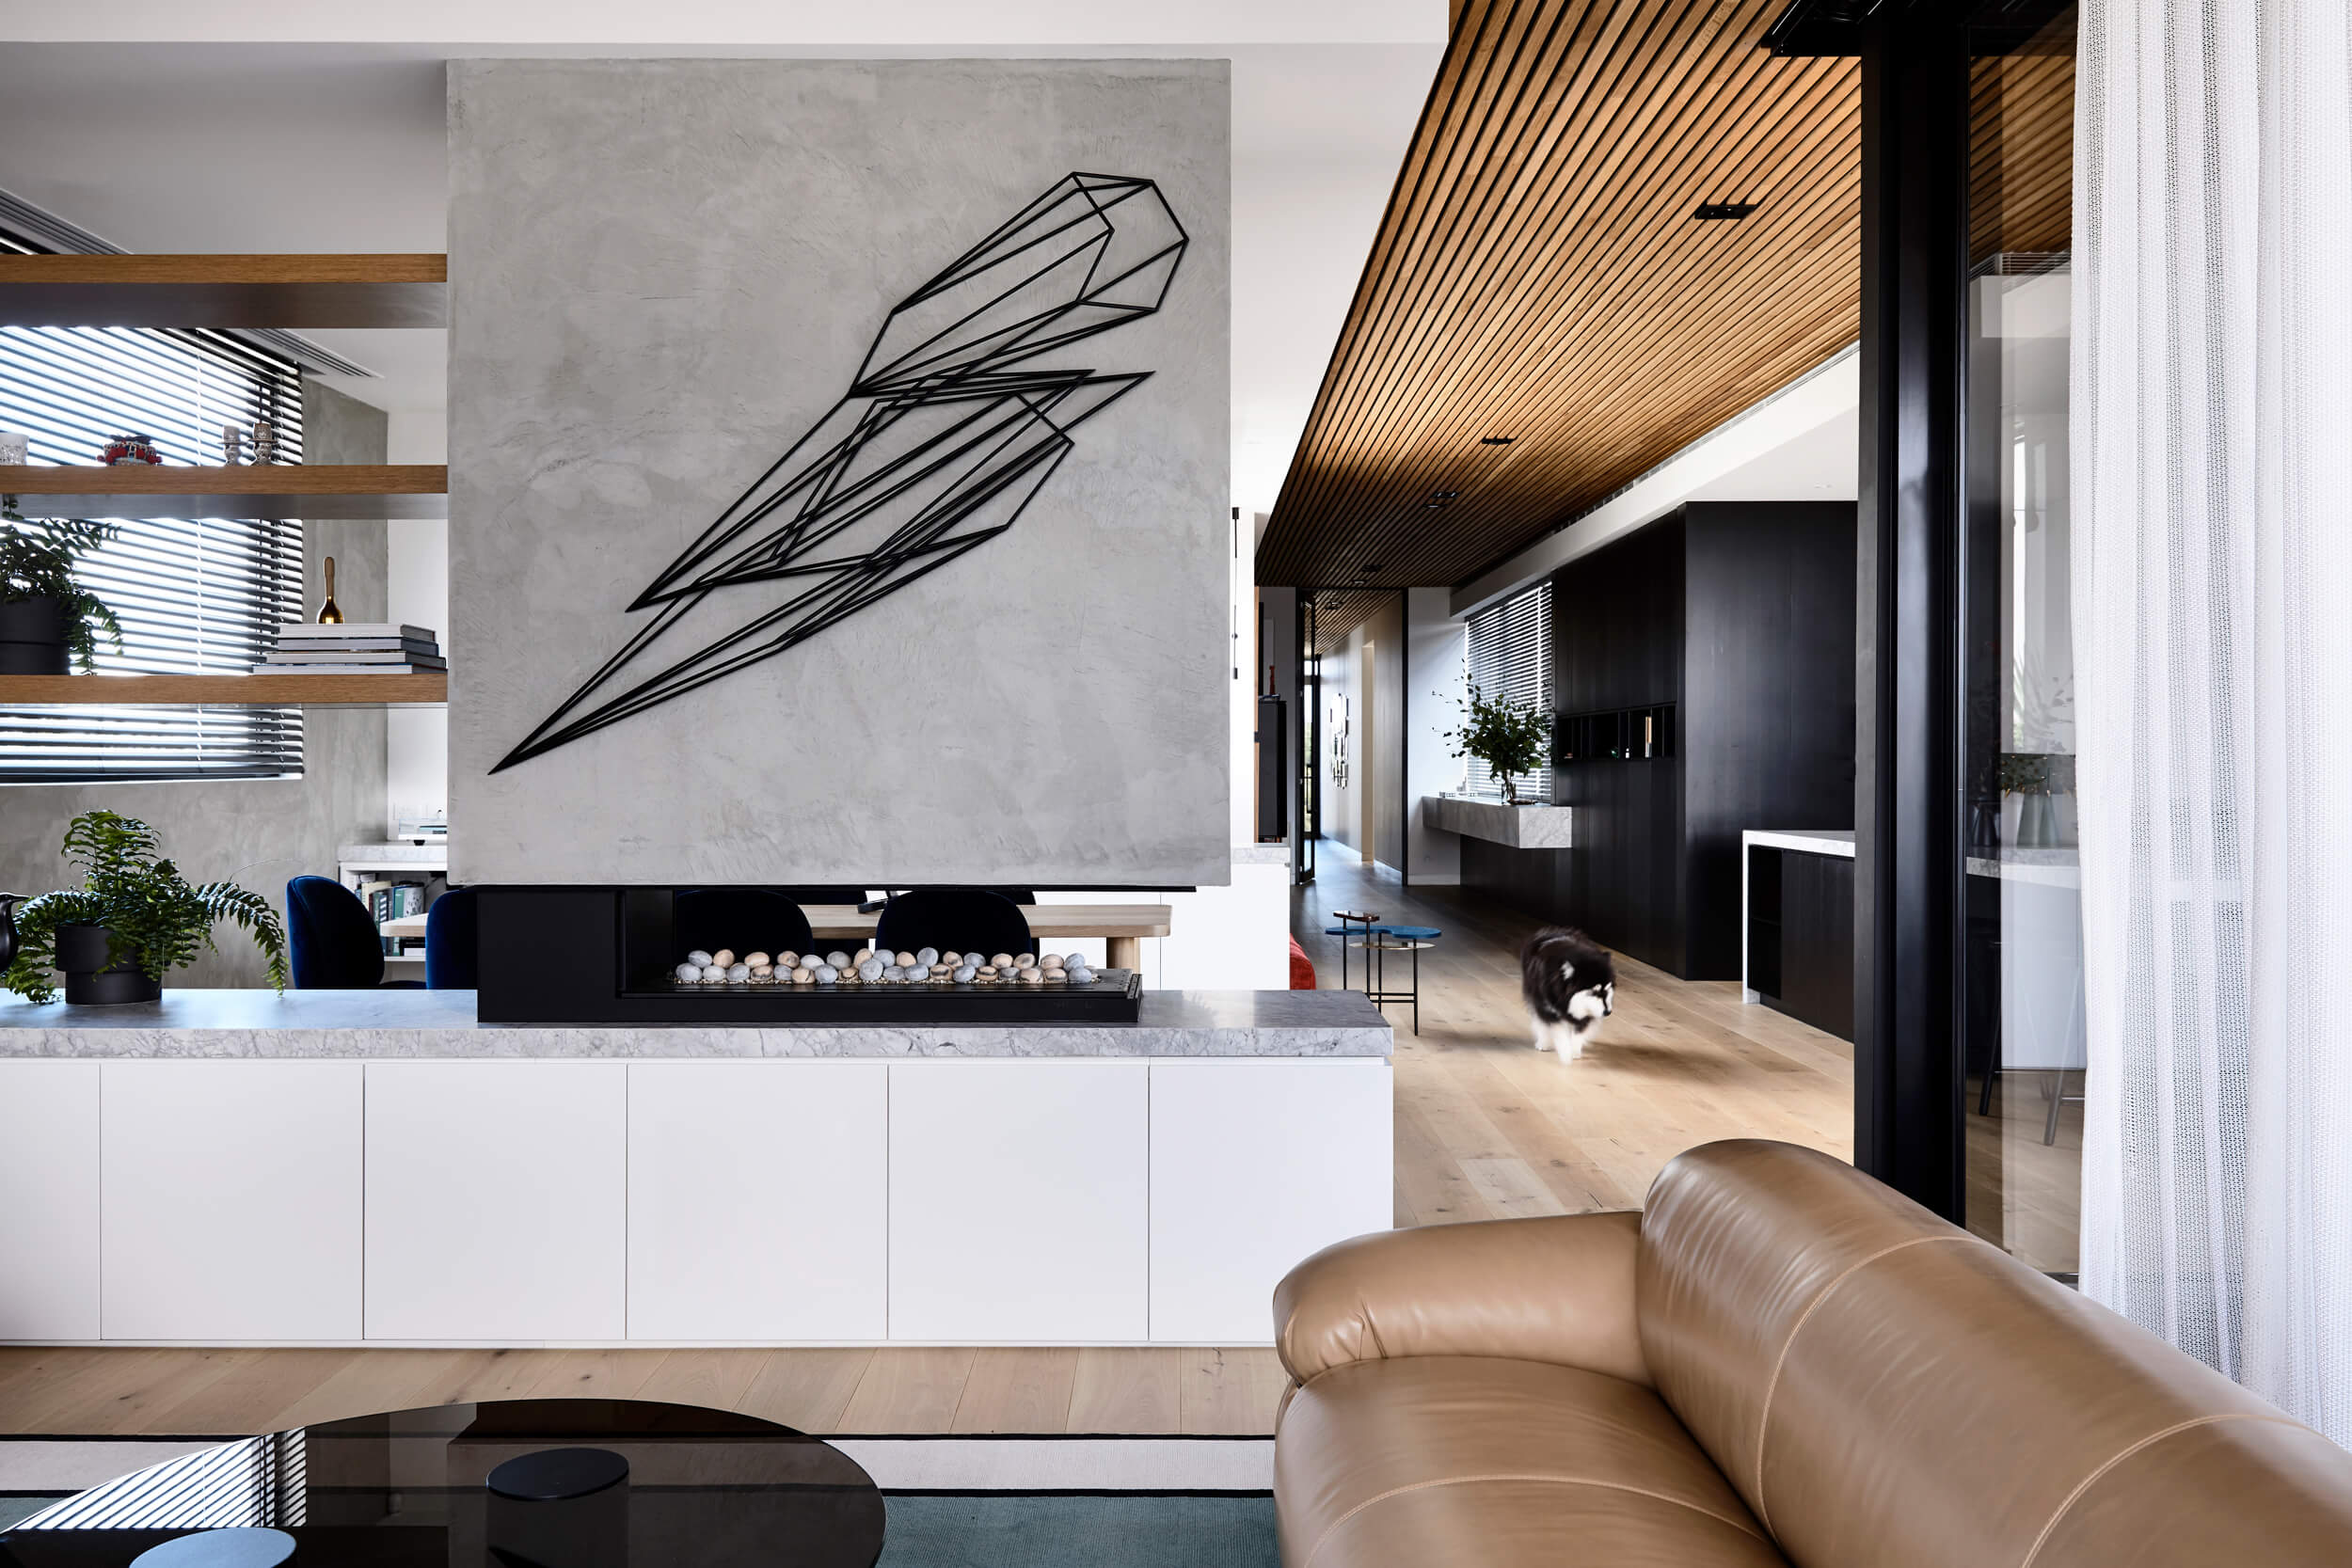 Holly Penthouse By Tom Robertson Architects Project Feature Melbourne, Australia Local Australian Design & Architectureholly R V Derek019